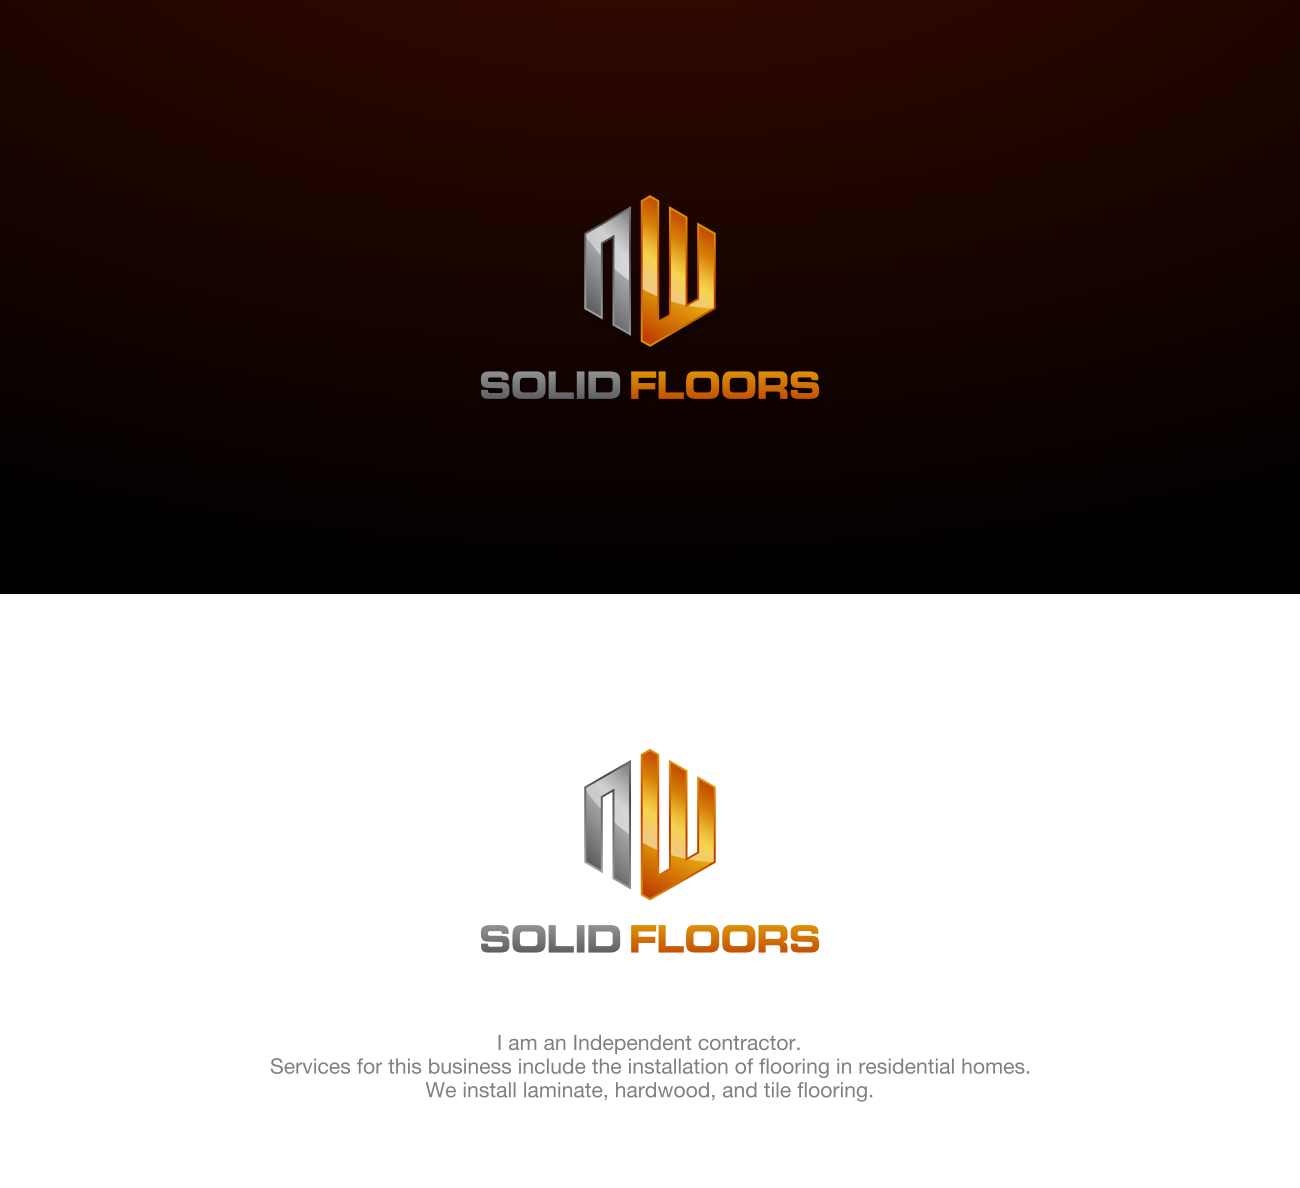 Modern Professional Logo Design For Nw Solid Floors By